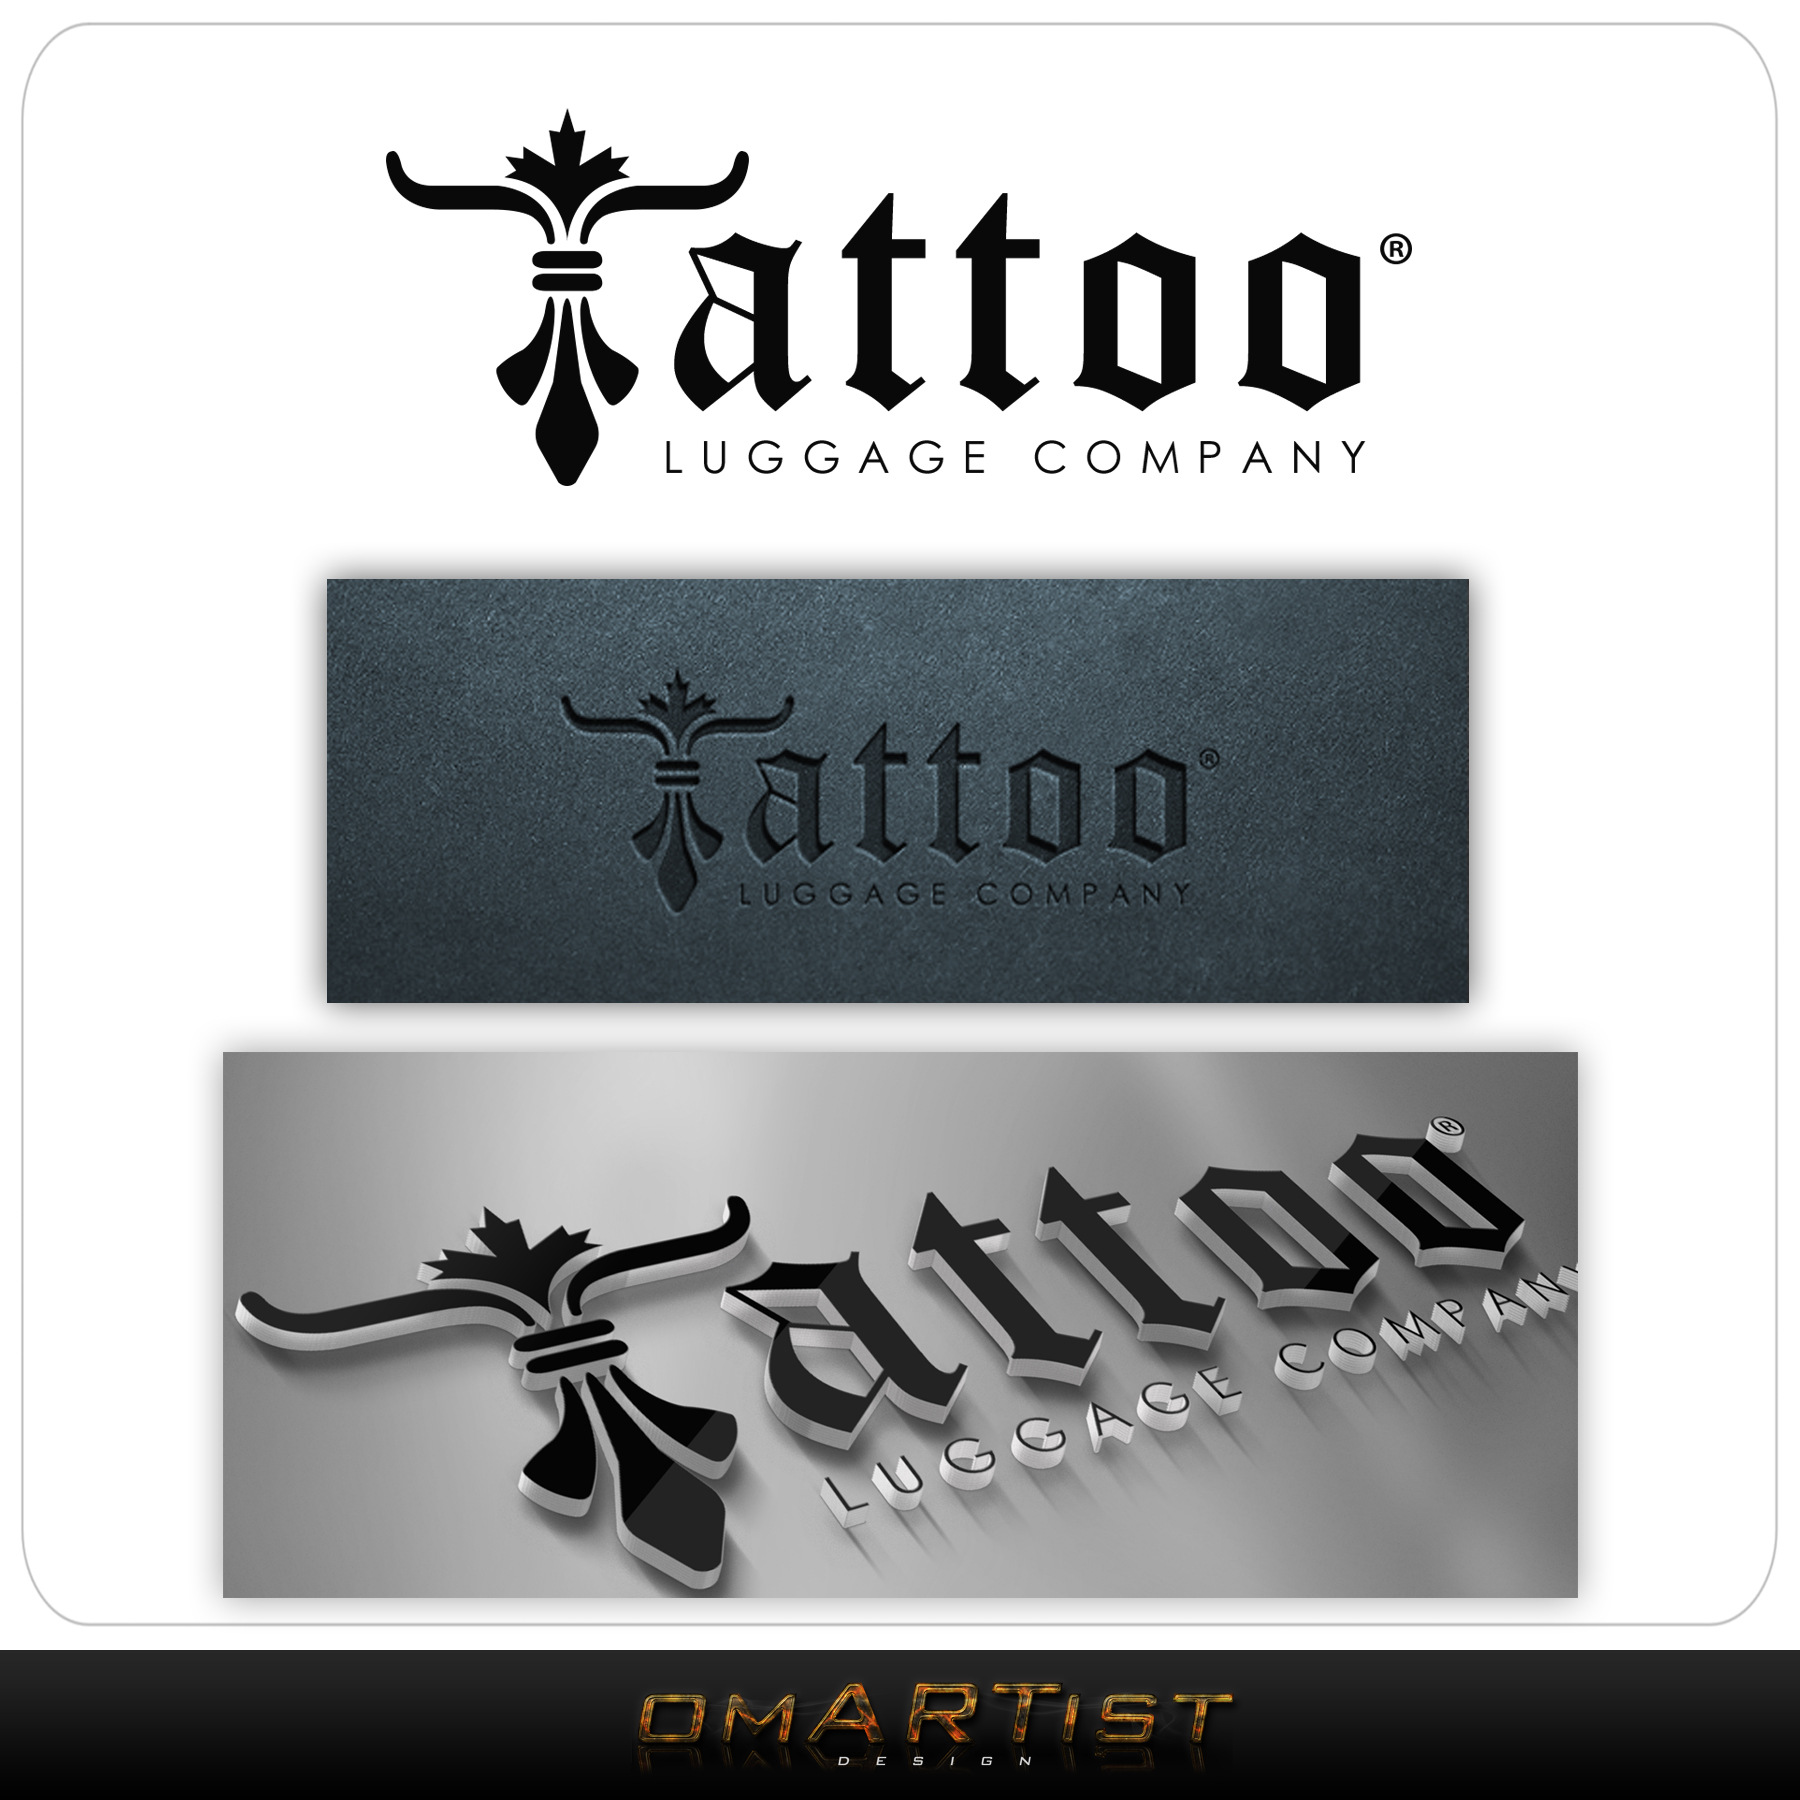 Logo Design by omARTist - Entry No. 52 in the Logo Design Contest Artistic Logo Design for Tattoo Luggage Company.